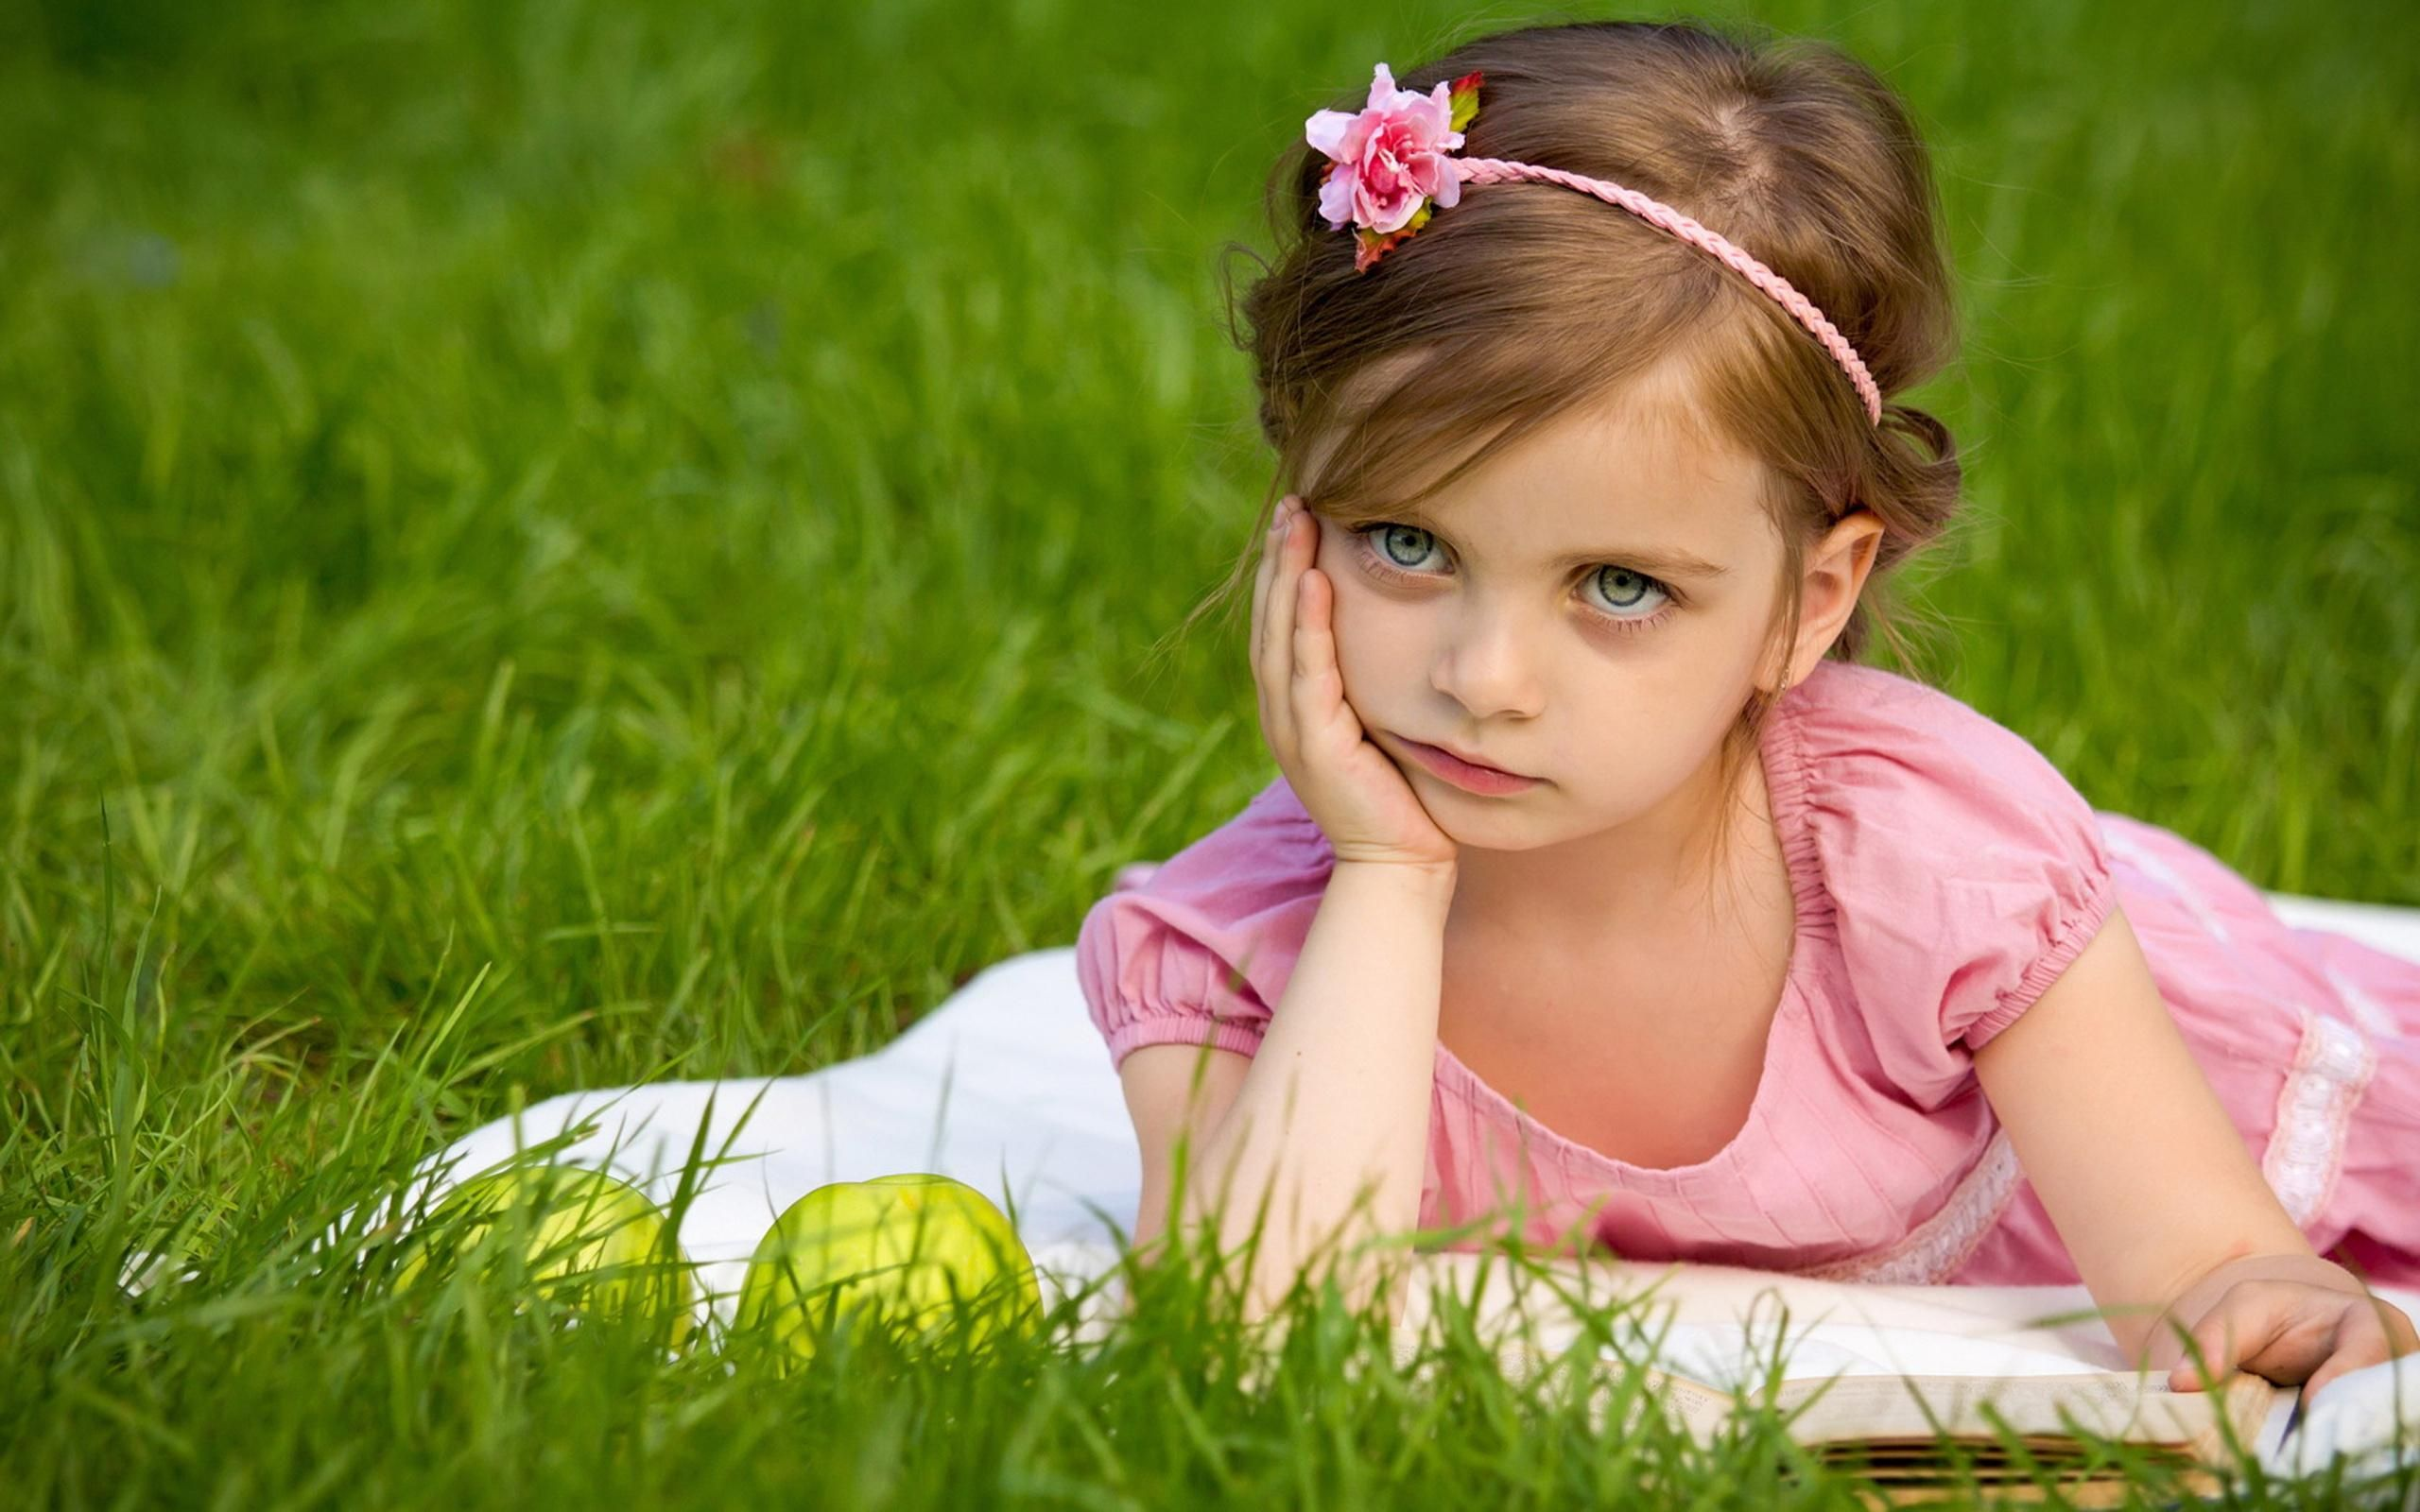 FunMozar Cute Baby Girl Wallpapers For Mobile 2560x1600